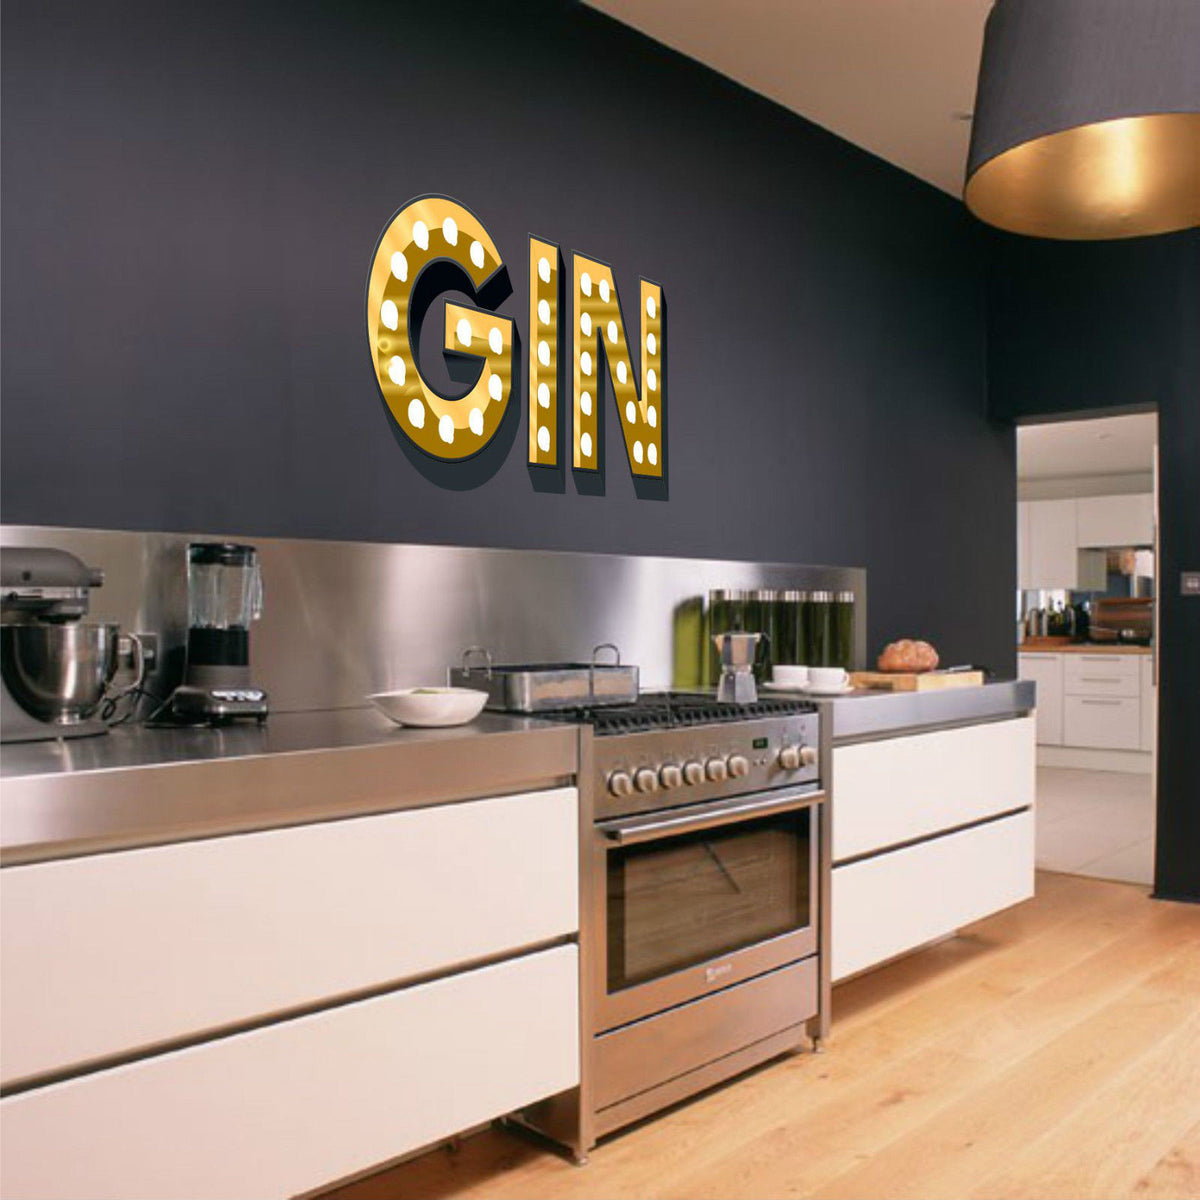 Gin Illuminated Light Up Effect Letters Wall Stickers Decal Alcohol Lo Kapow Boom